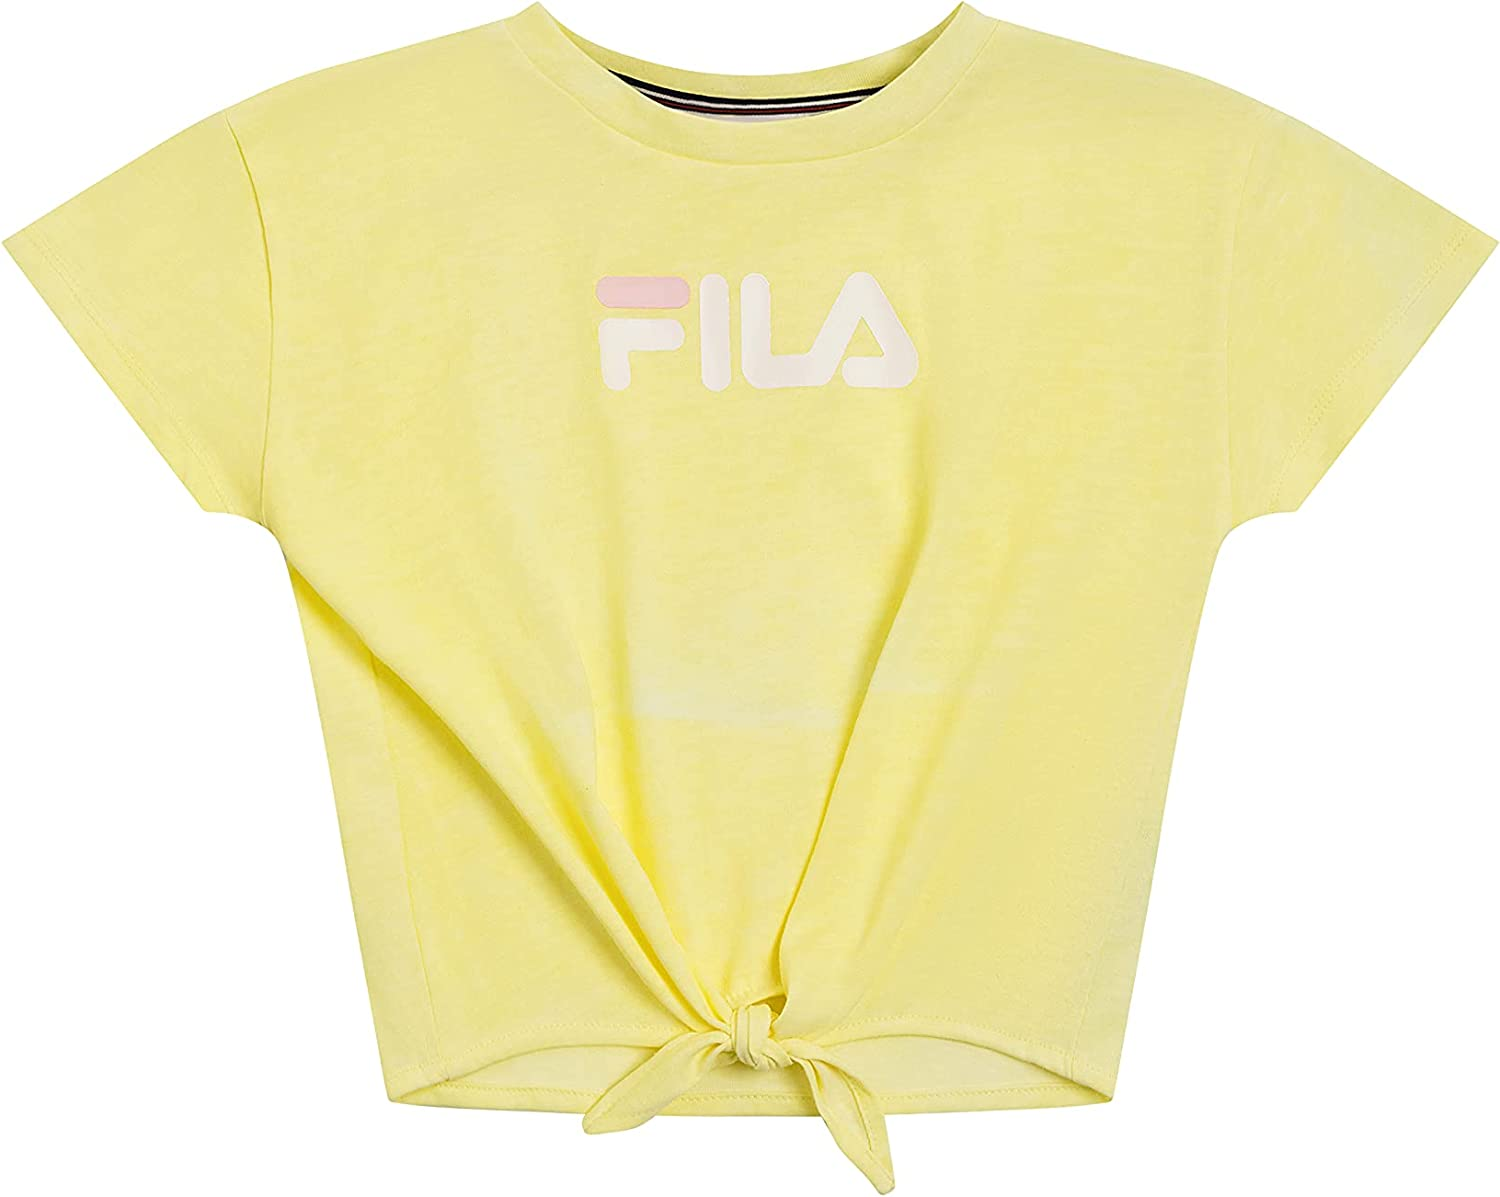 Fila Heritage Girls Short Sleeve T-Shirt Max 60% OFF Shirt Logo Limited Special Price Kids Clothes